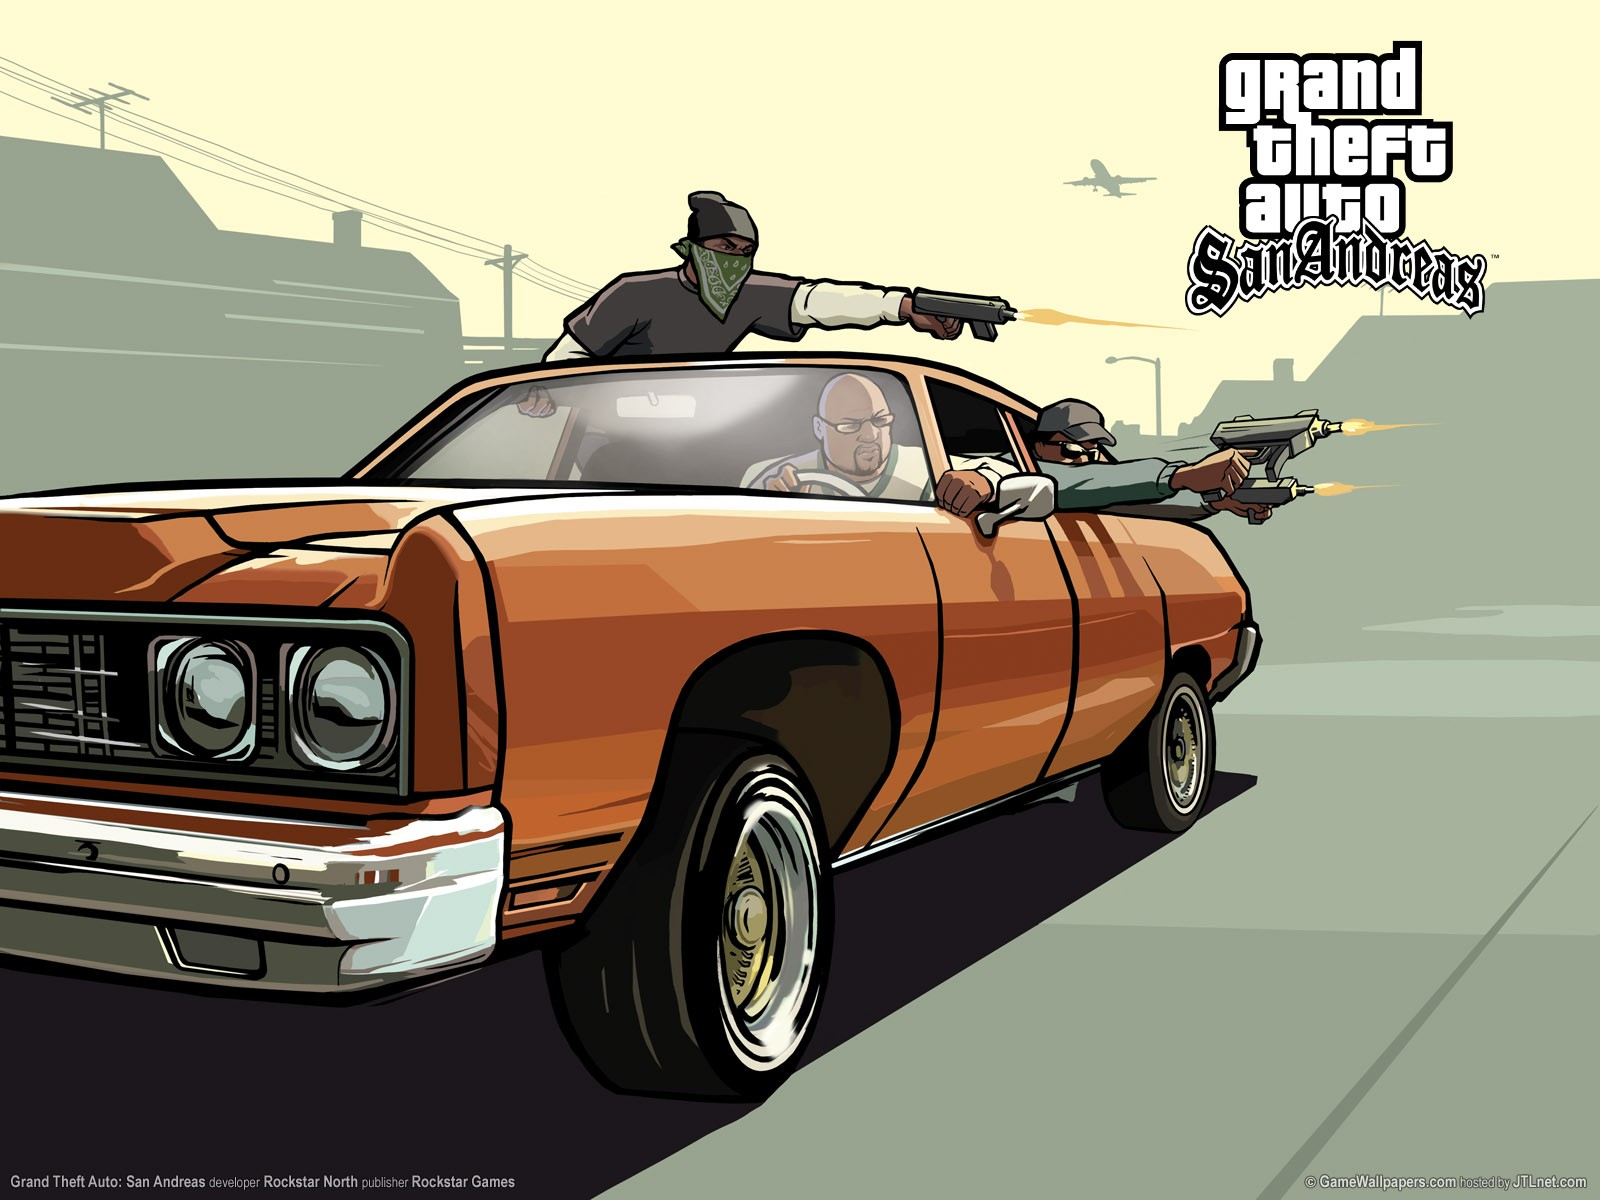 92+] Grand Theft Auto: San Andreas HD Wallpapers on